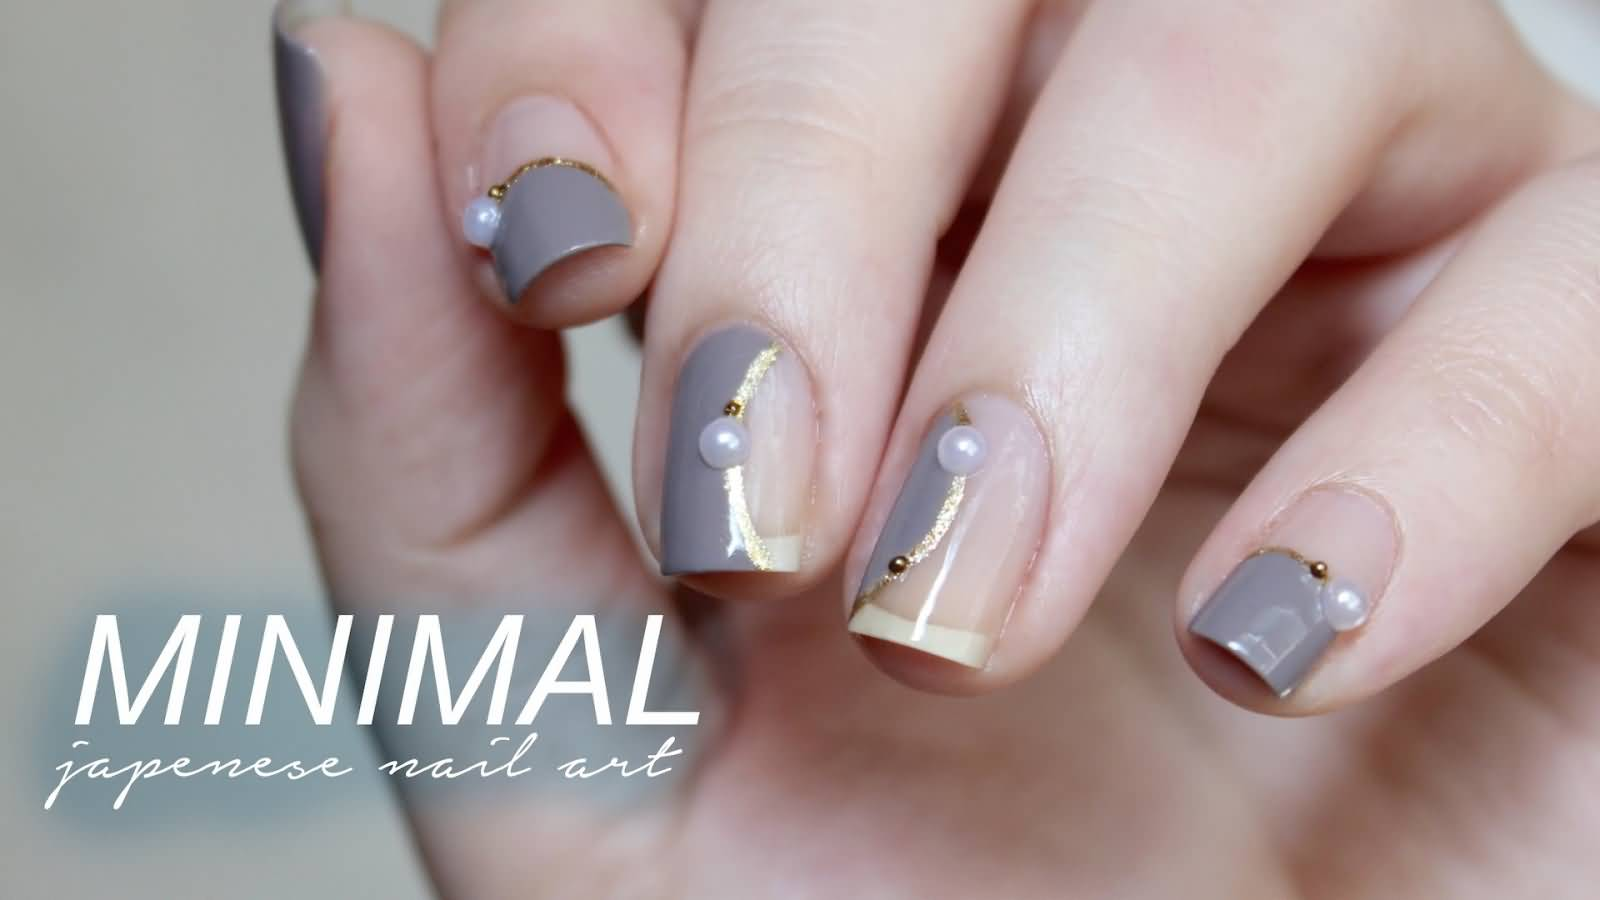 Asian nail designs can not